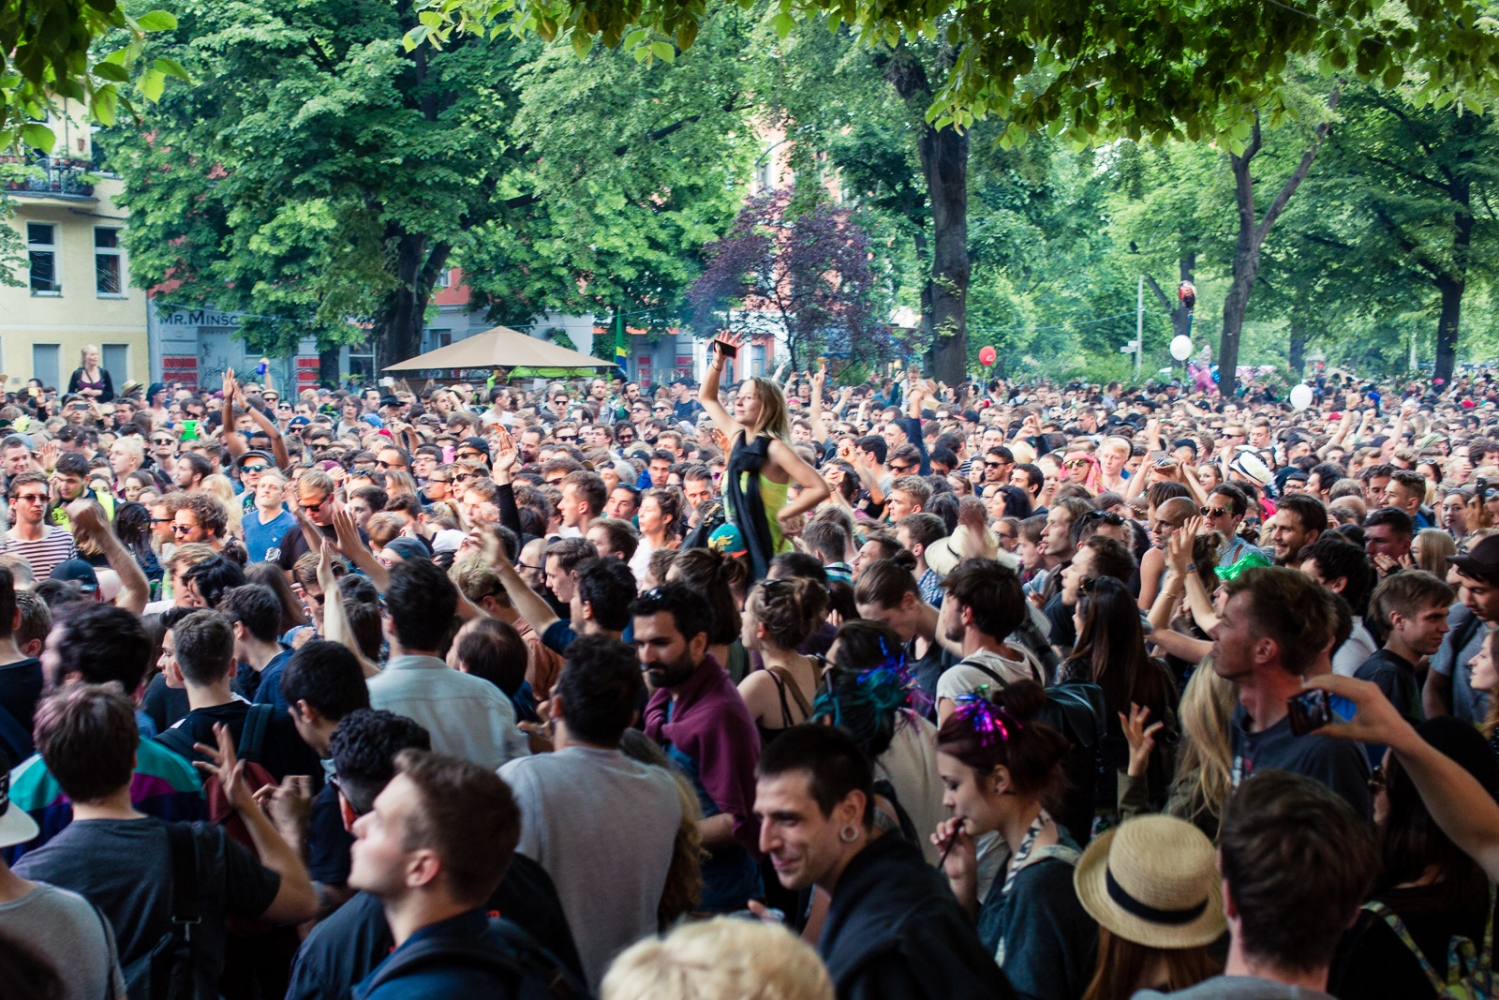 Berlin, GERMANY, May 24, 2015: Karneval der Kulturen is an annual parade celebrating the diverse cultures and musical influences in Berlin. Thousands of people gather in Berlin's streets to celebrate intercultural understanding, acceptance, and peaceful co-existence.